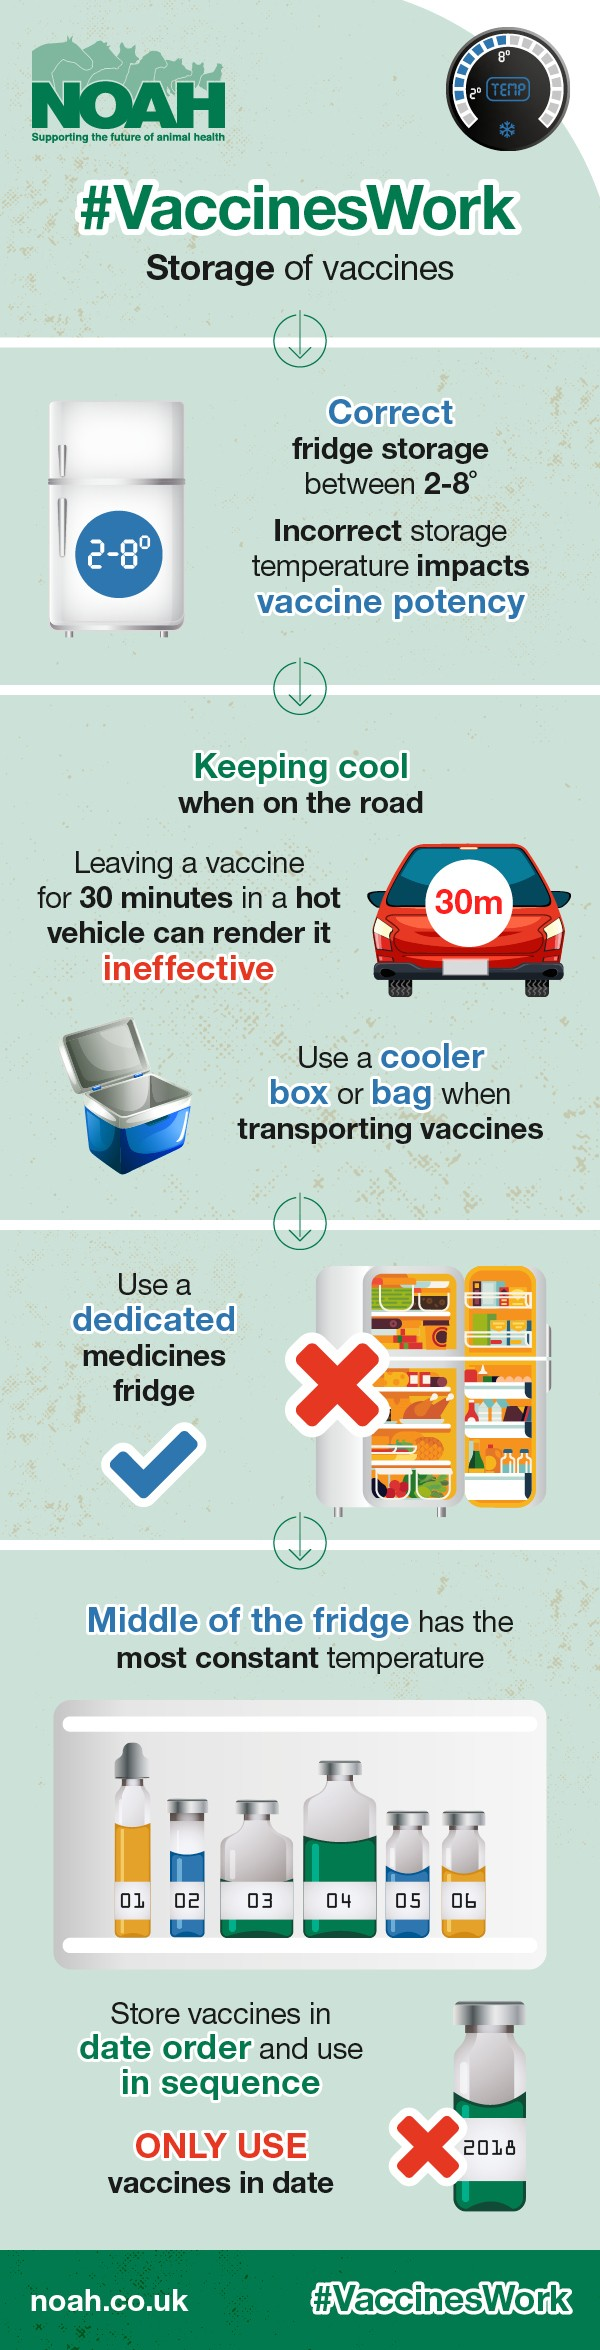 Click image for larger version  Name:	NOAH-vaccines-storage-infographic.jpg Views:	0 Size:	279.0 KB ID:	51466